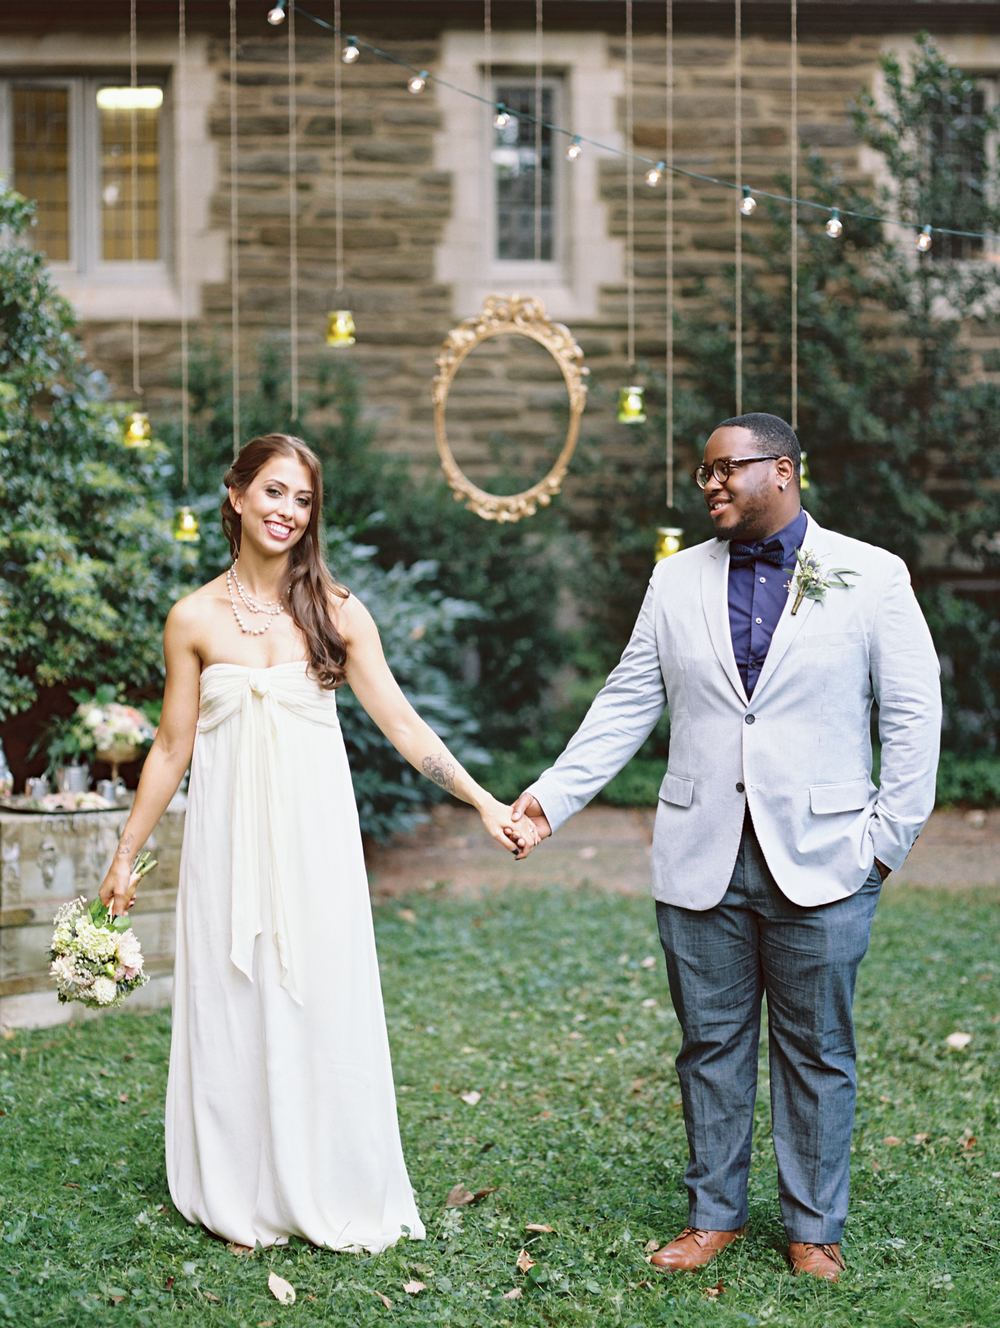 elopement.wedding.photographer.nyc.sarah.day-boodhoo.37.jpg